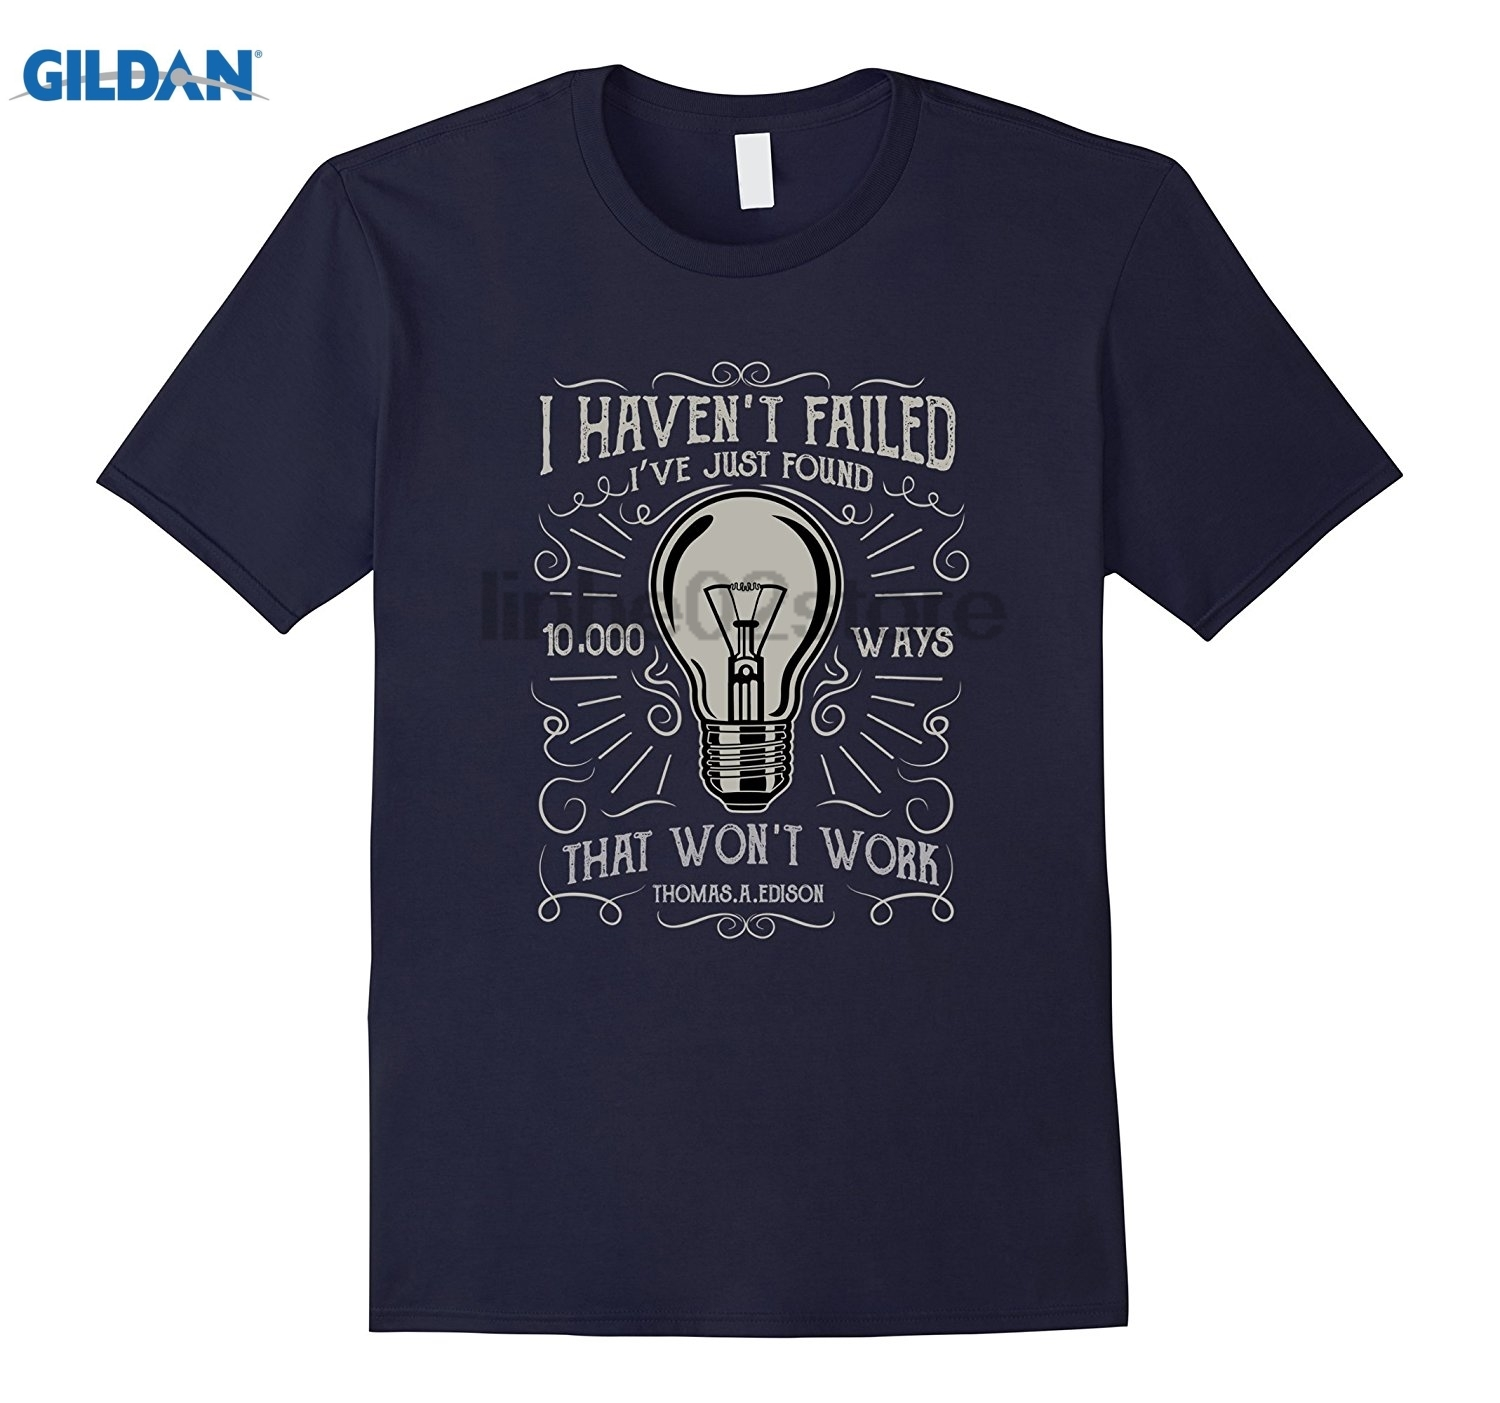 GILDAN I havent failed. Great Thomas Edison memorial tee. dress T-shirt Womens T-shirt ...